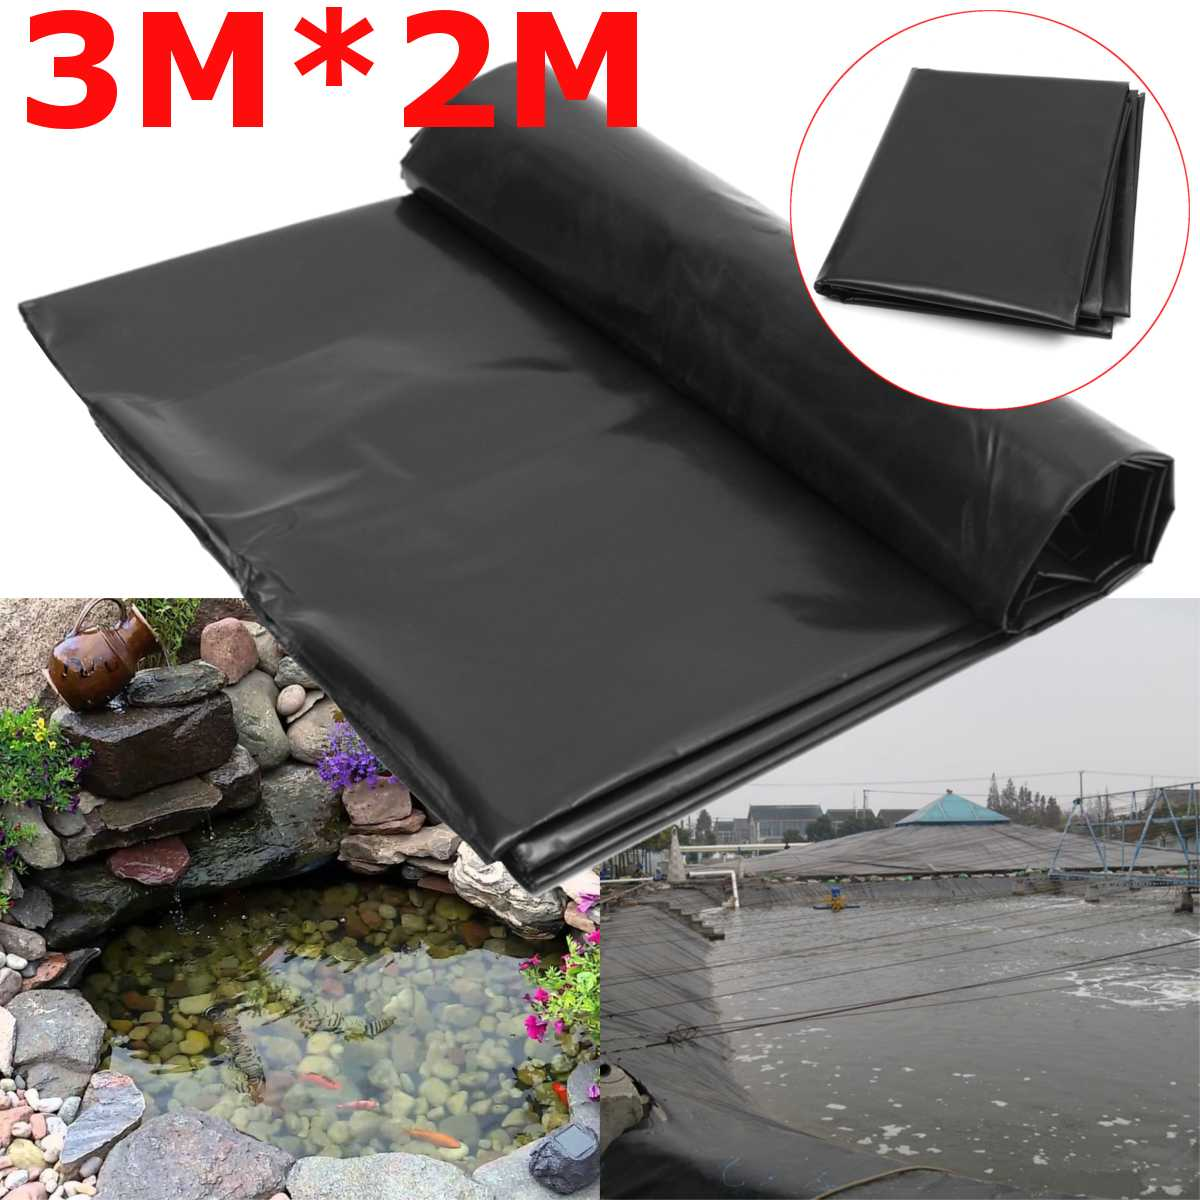 3X2M Black Fish Pond Liner Cloth Home Garden Pool Reinforced HDPE Heavy   Landscaping Pool Pond Waterproof Liner Cloth New|Pond Liners| |  - title=